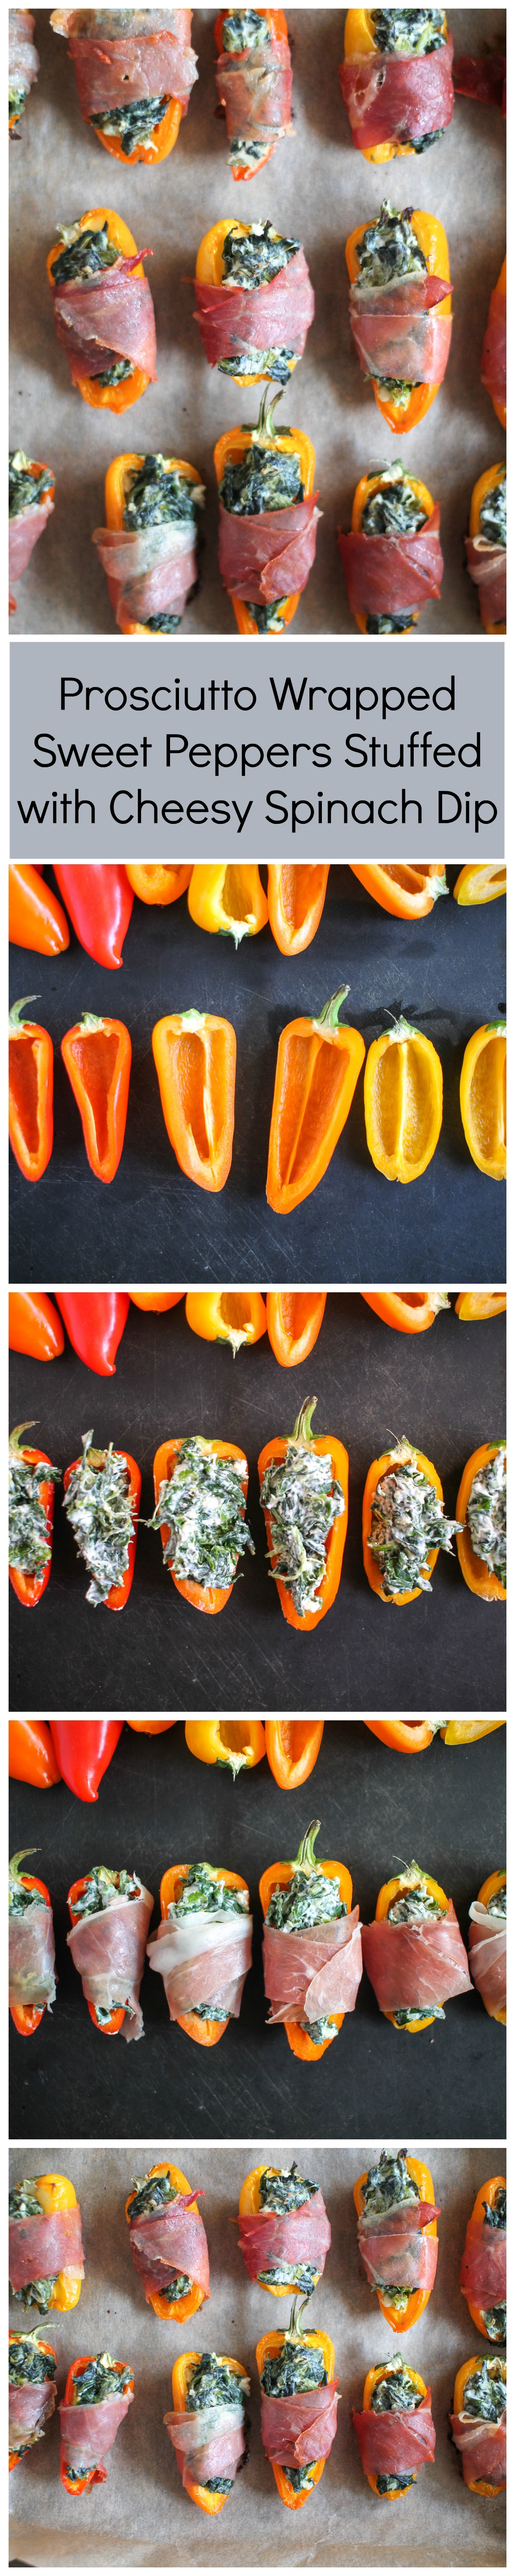 The easiest appetizer recipe - sweet peppers stuffed with cheesy spinach dip and wrapped with prosciutto!